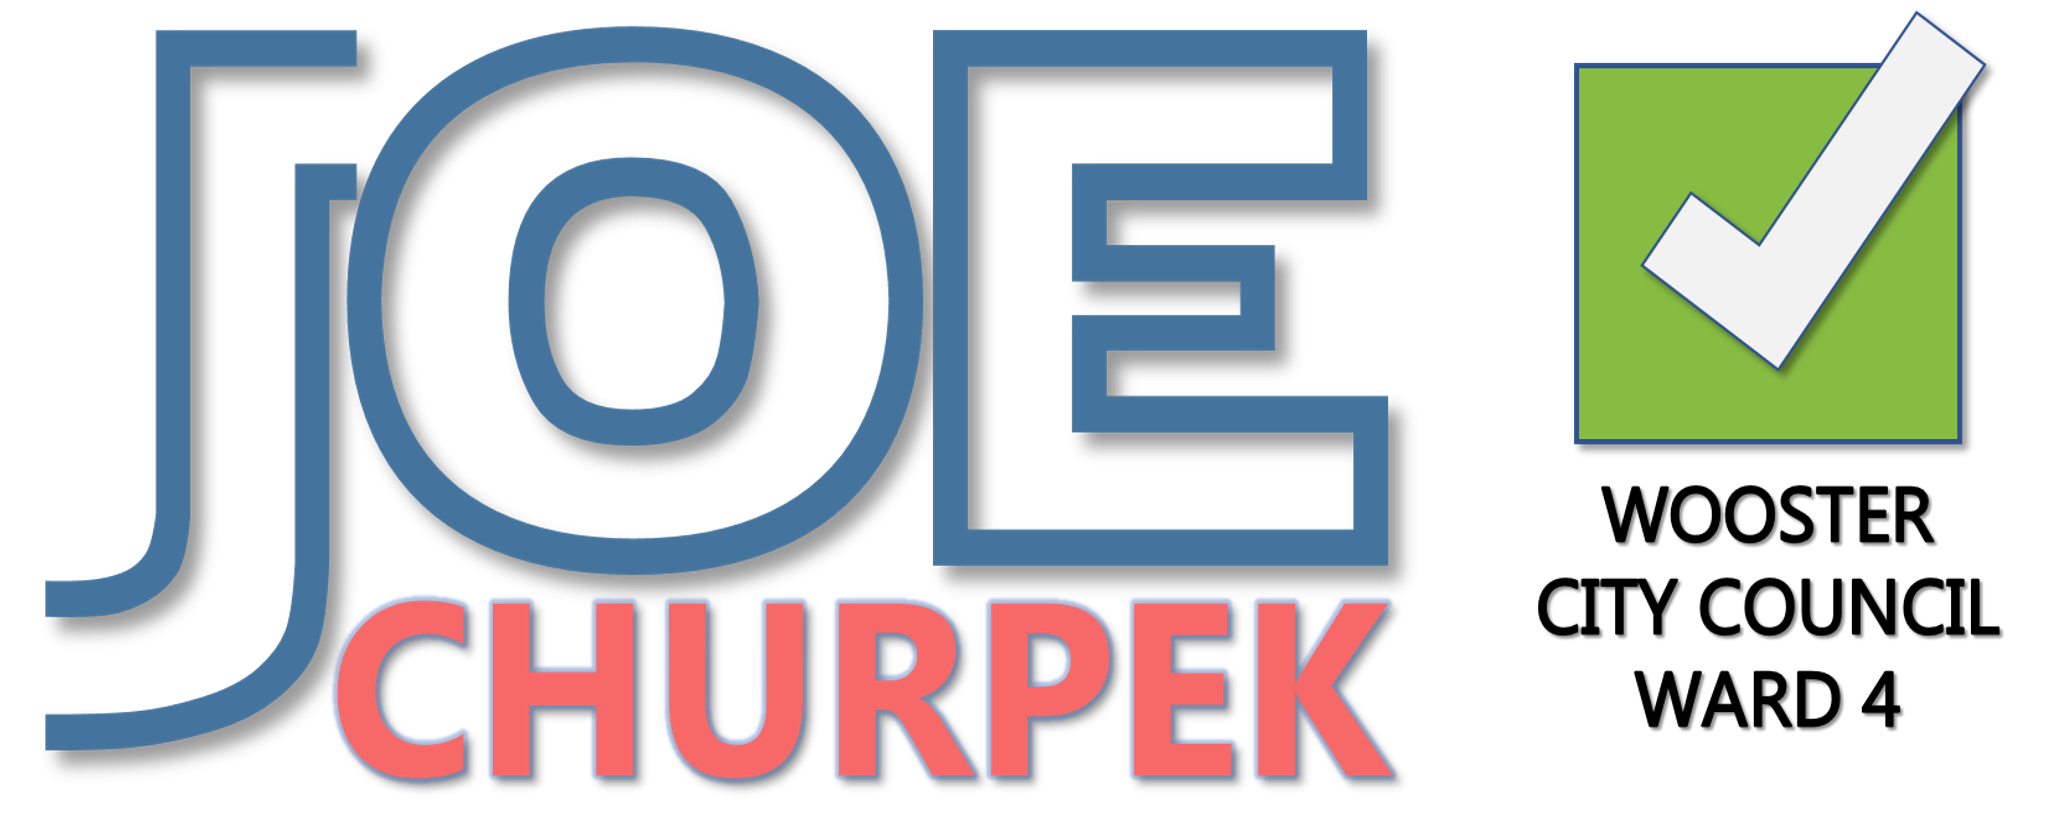 Joe Churpek for Wooster City Council